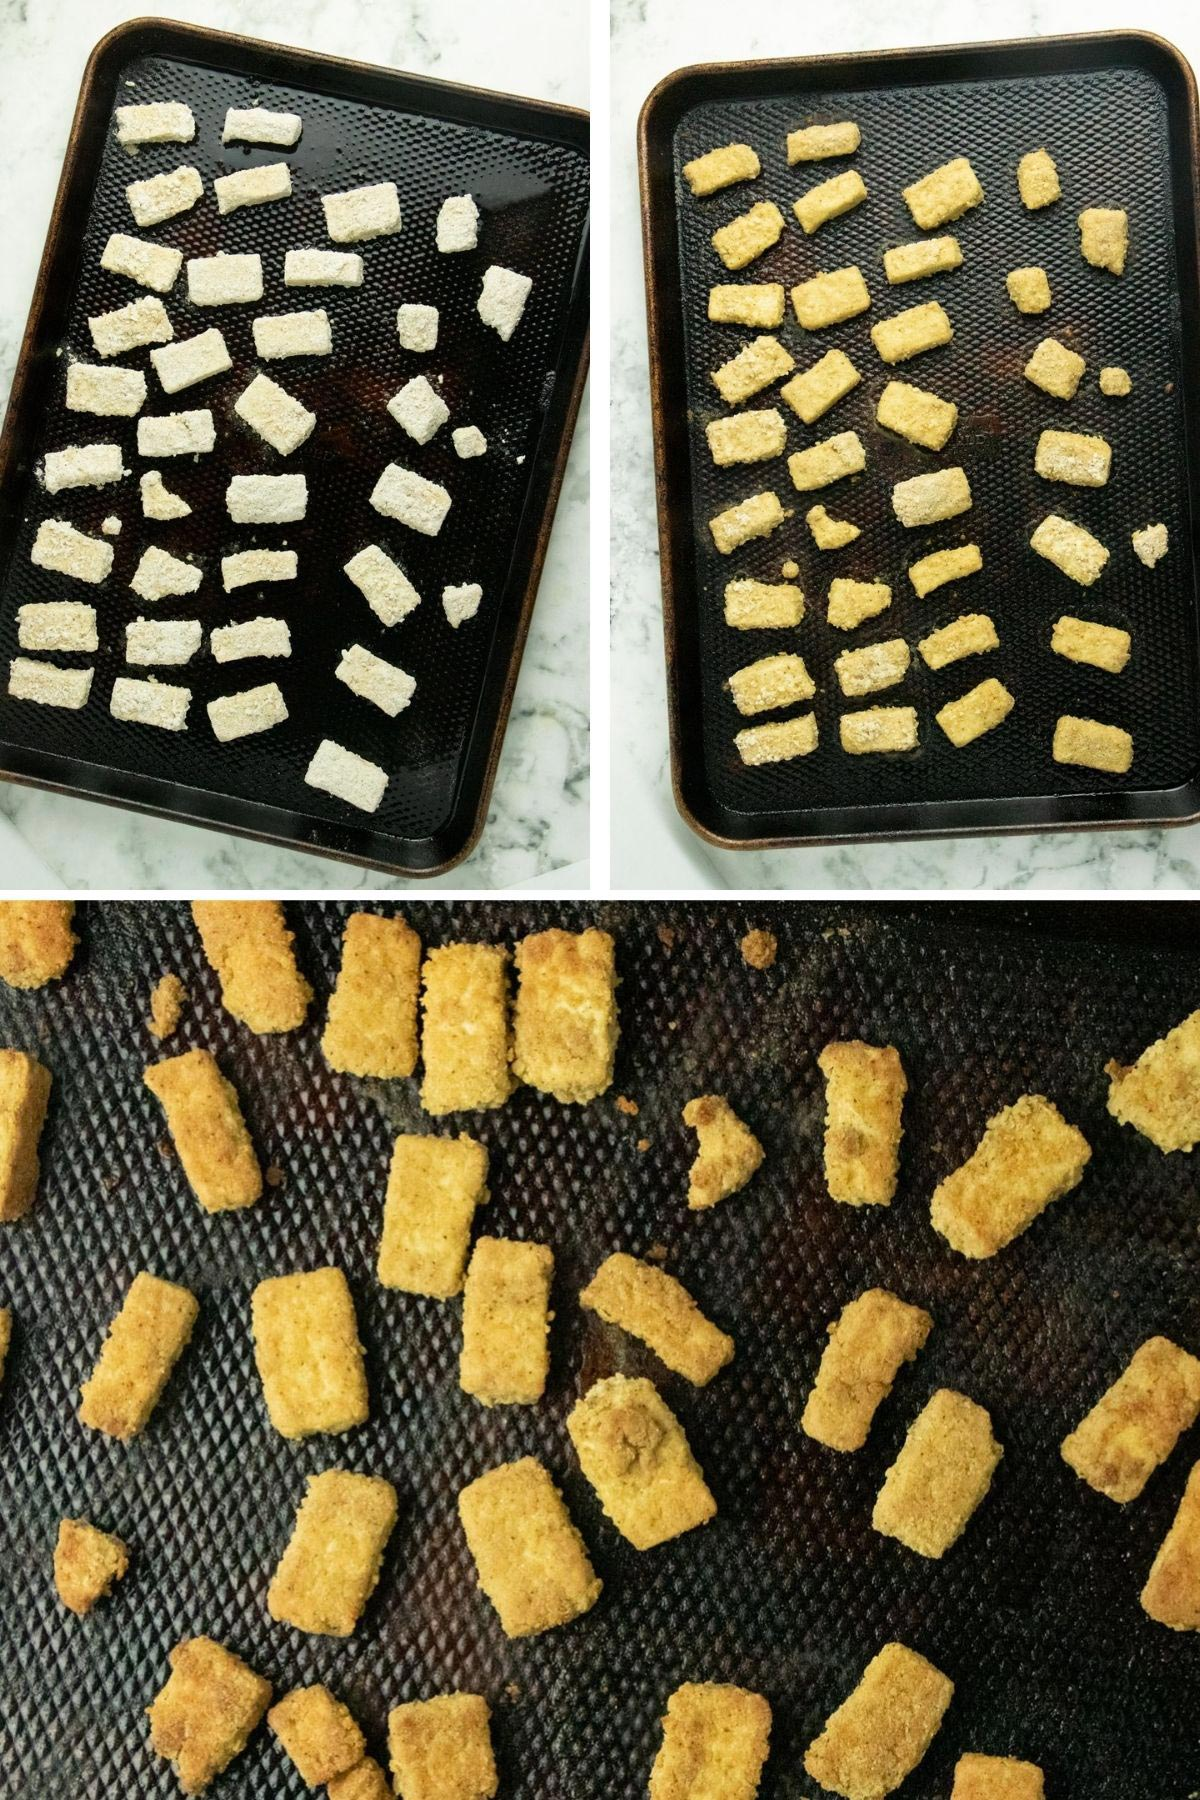 image collage showing tofu on a baking sheet before baking, after flipping, and after the full baking time